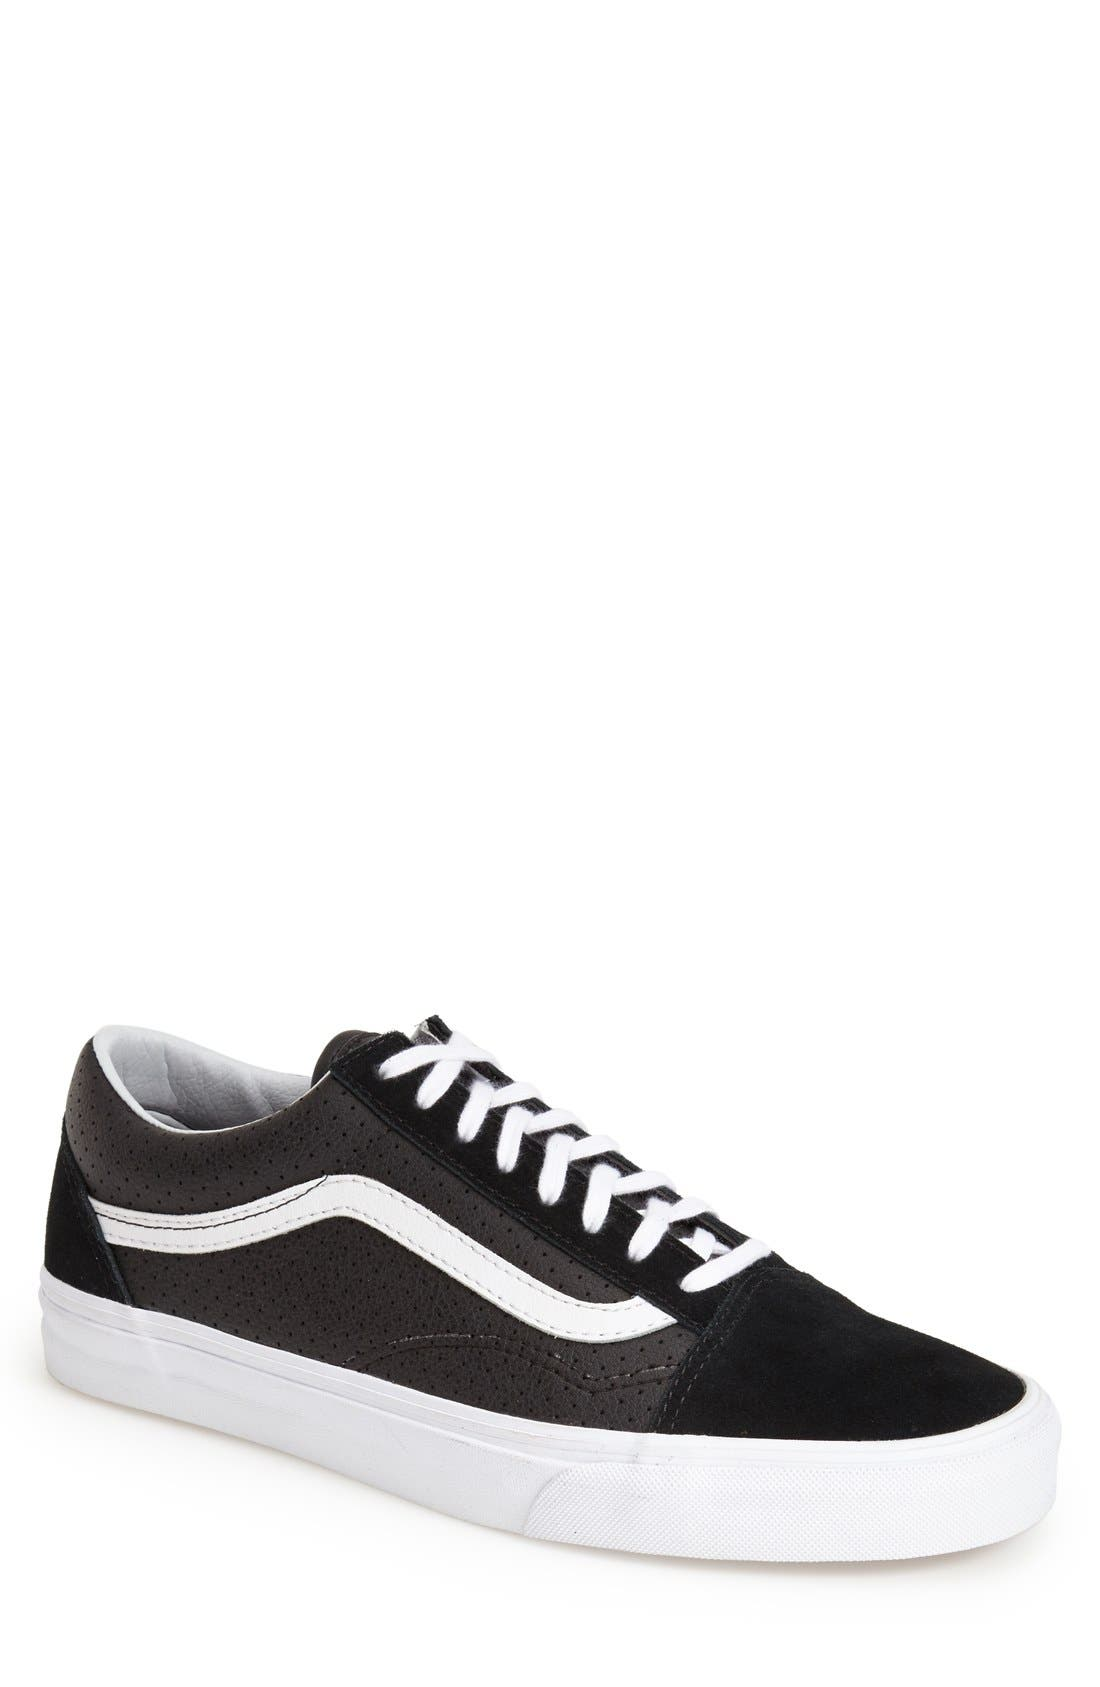 Alternate Image 1 Selected - Vans 'Old Skool' Sneaker (Men) (Nordstrom Exclusive)